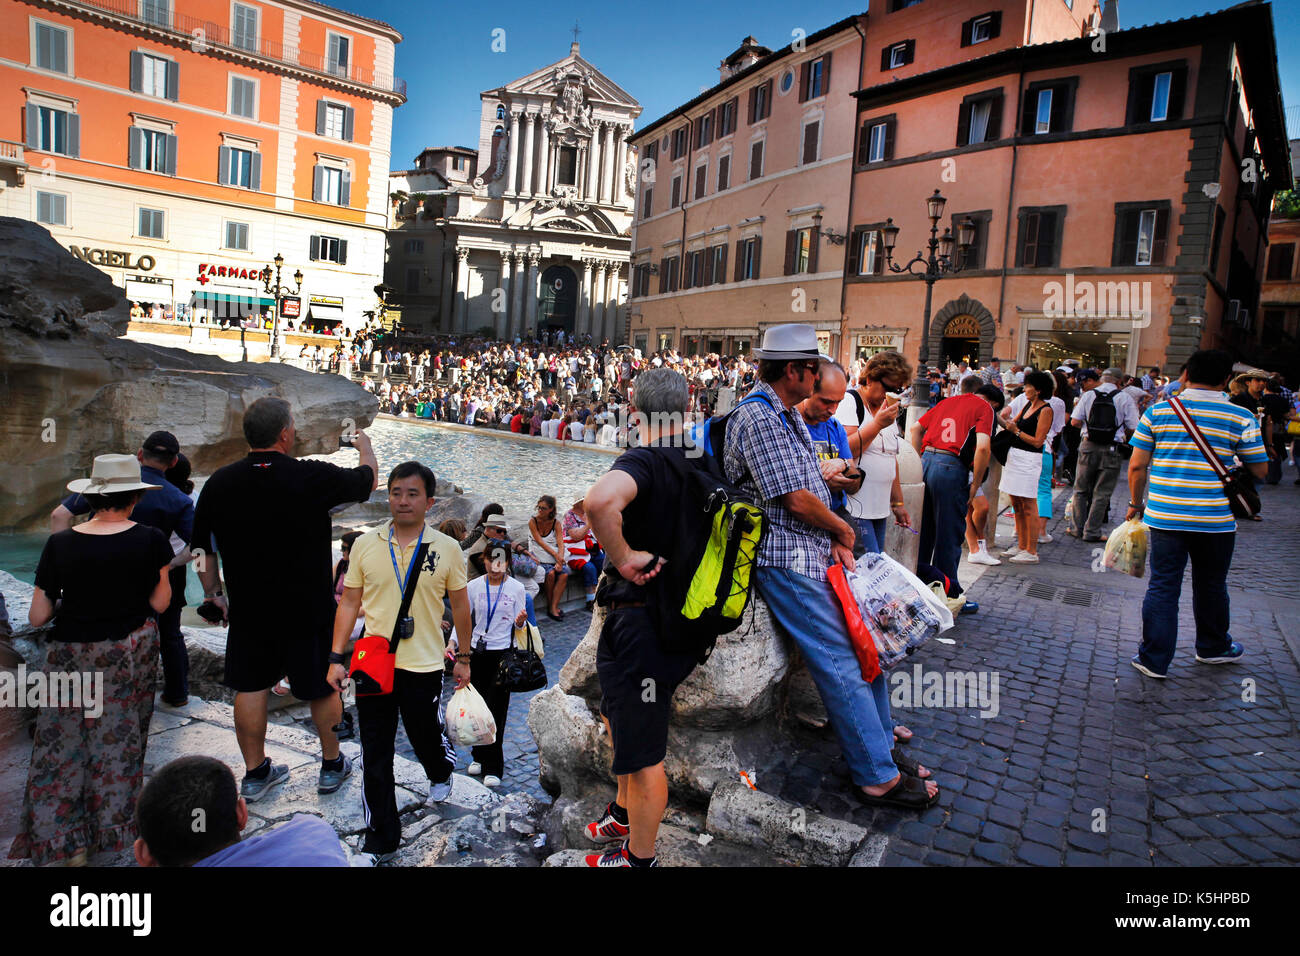 Trevi Fountain, Rome, Italy. Tourists at the Trevi Fountain. - Stock Image